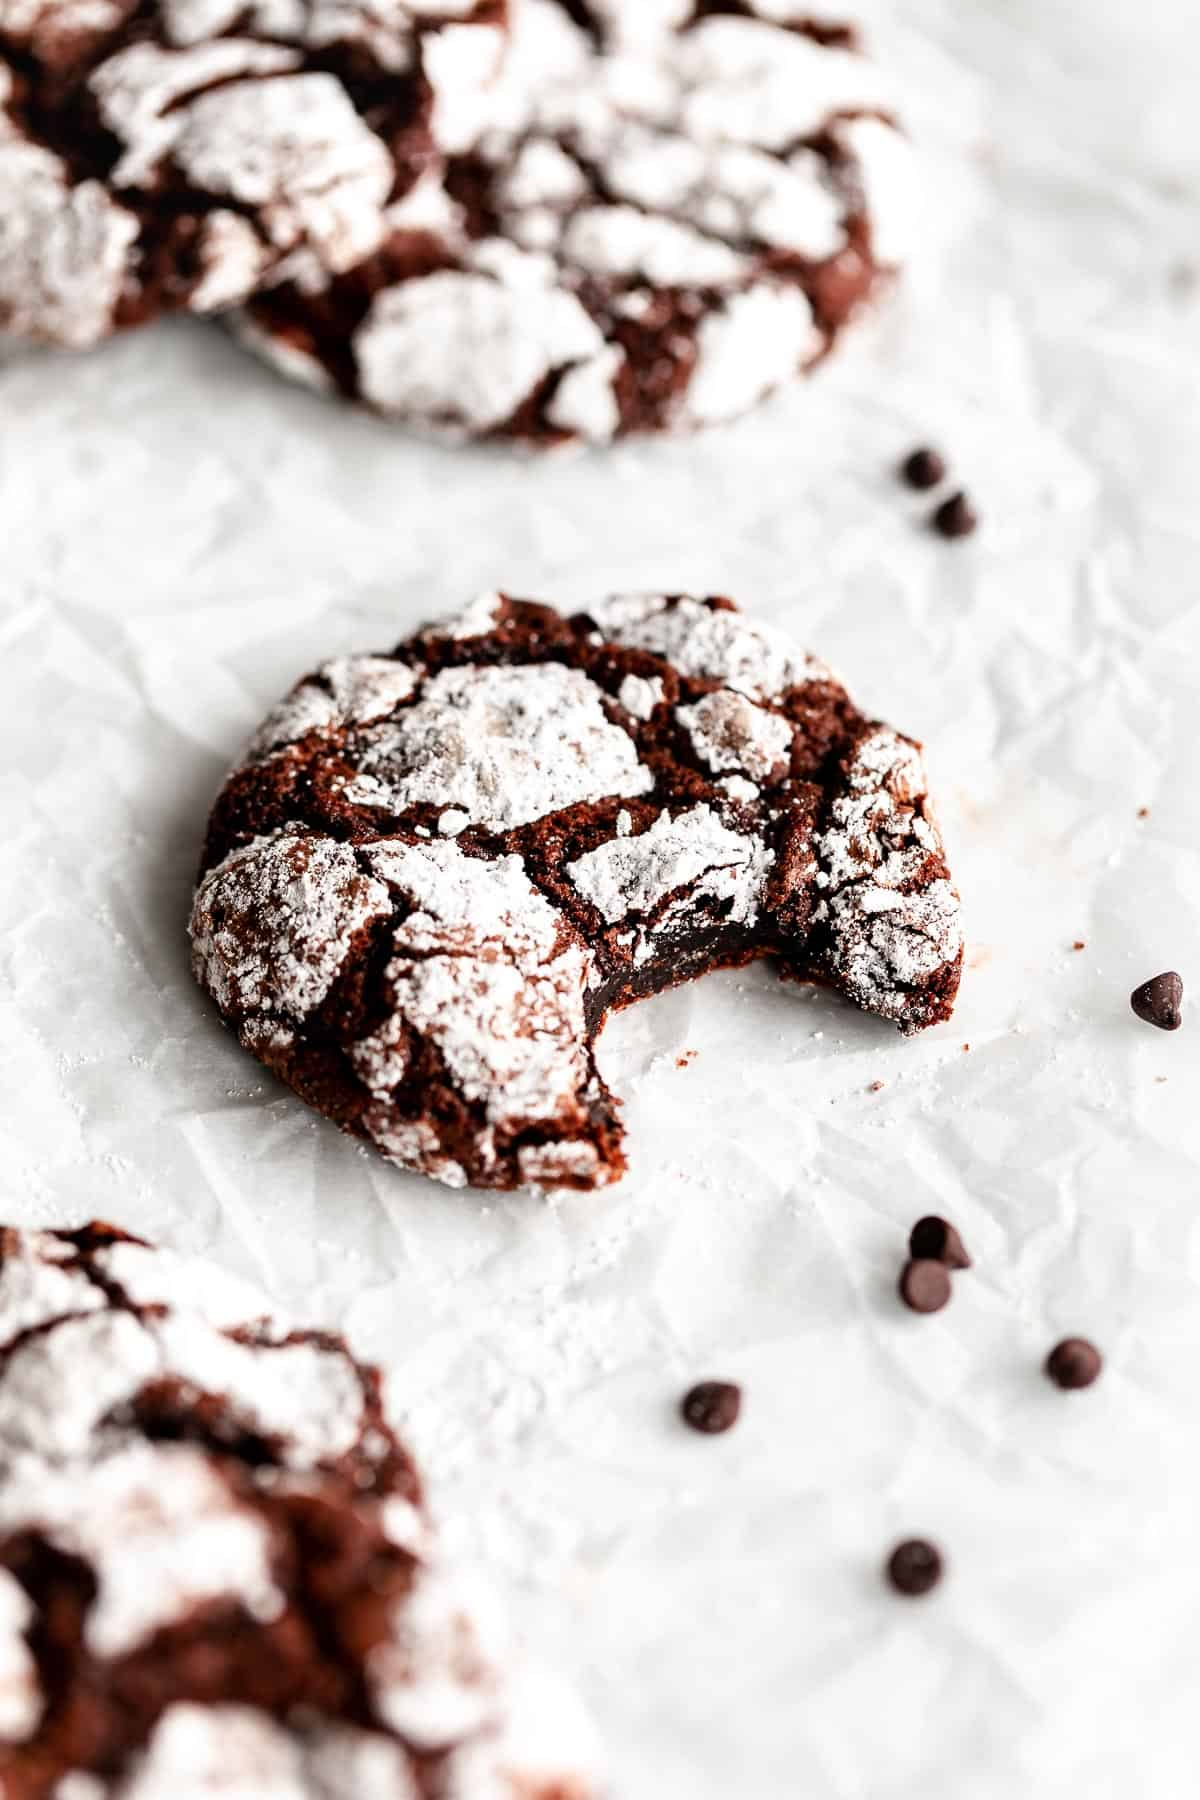 gluten free chocolate crinkle cookies with a bite taken out